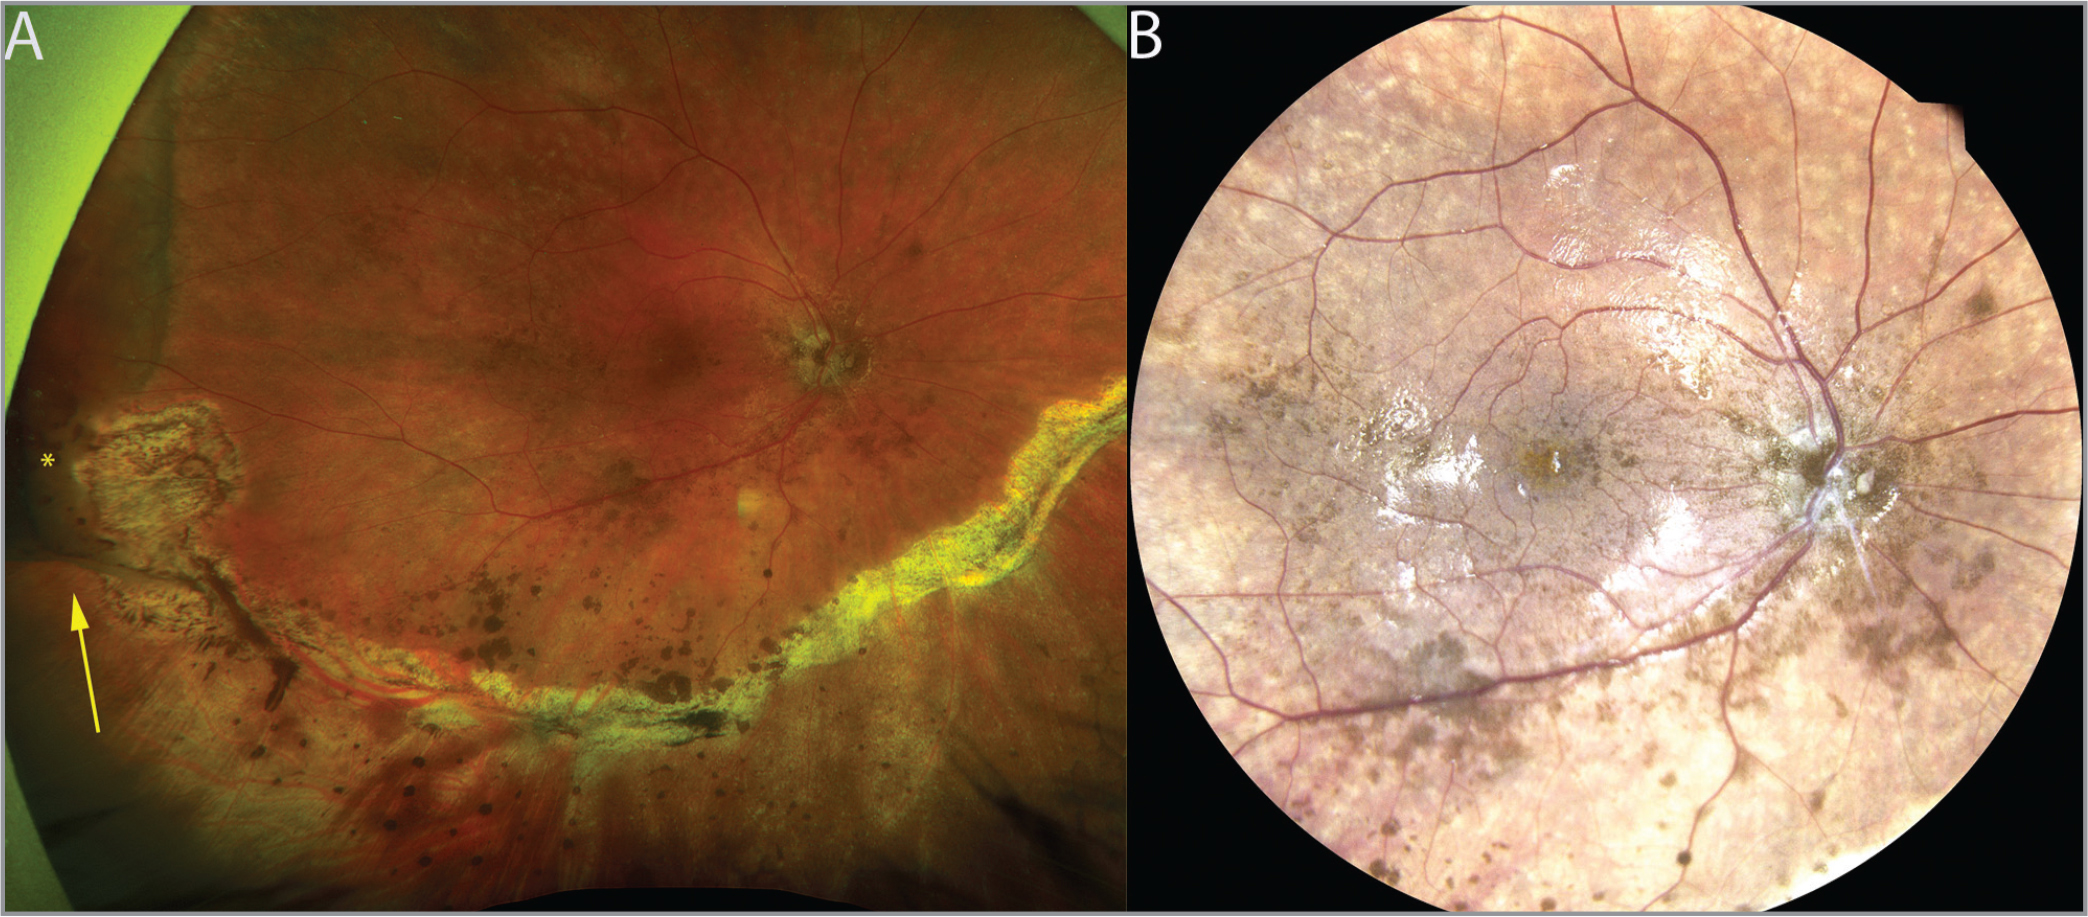 (A) Widefield fundus photo (Optos, Marlborough, MA) of the right eye demonstrates a posteriorly attached retina, inferior retinectomy, and silicone oil fill. There is extensive preretinal pigment deposition on the inferior hemiretina. The temporal margin of the retinectomy is elevated with extensive pigment release around the edge (arrow). There is a temporal retinal detachment anterior to the buckle (*) (B) Eidon (CenterVue, Padova, Italy) photograph of fundus imaging provides a higher magnification image highlighting the extent of preretinal pigment deposition.